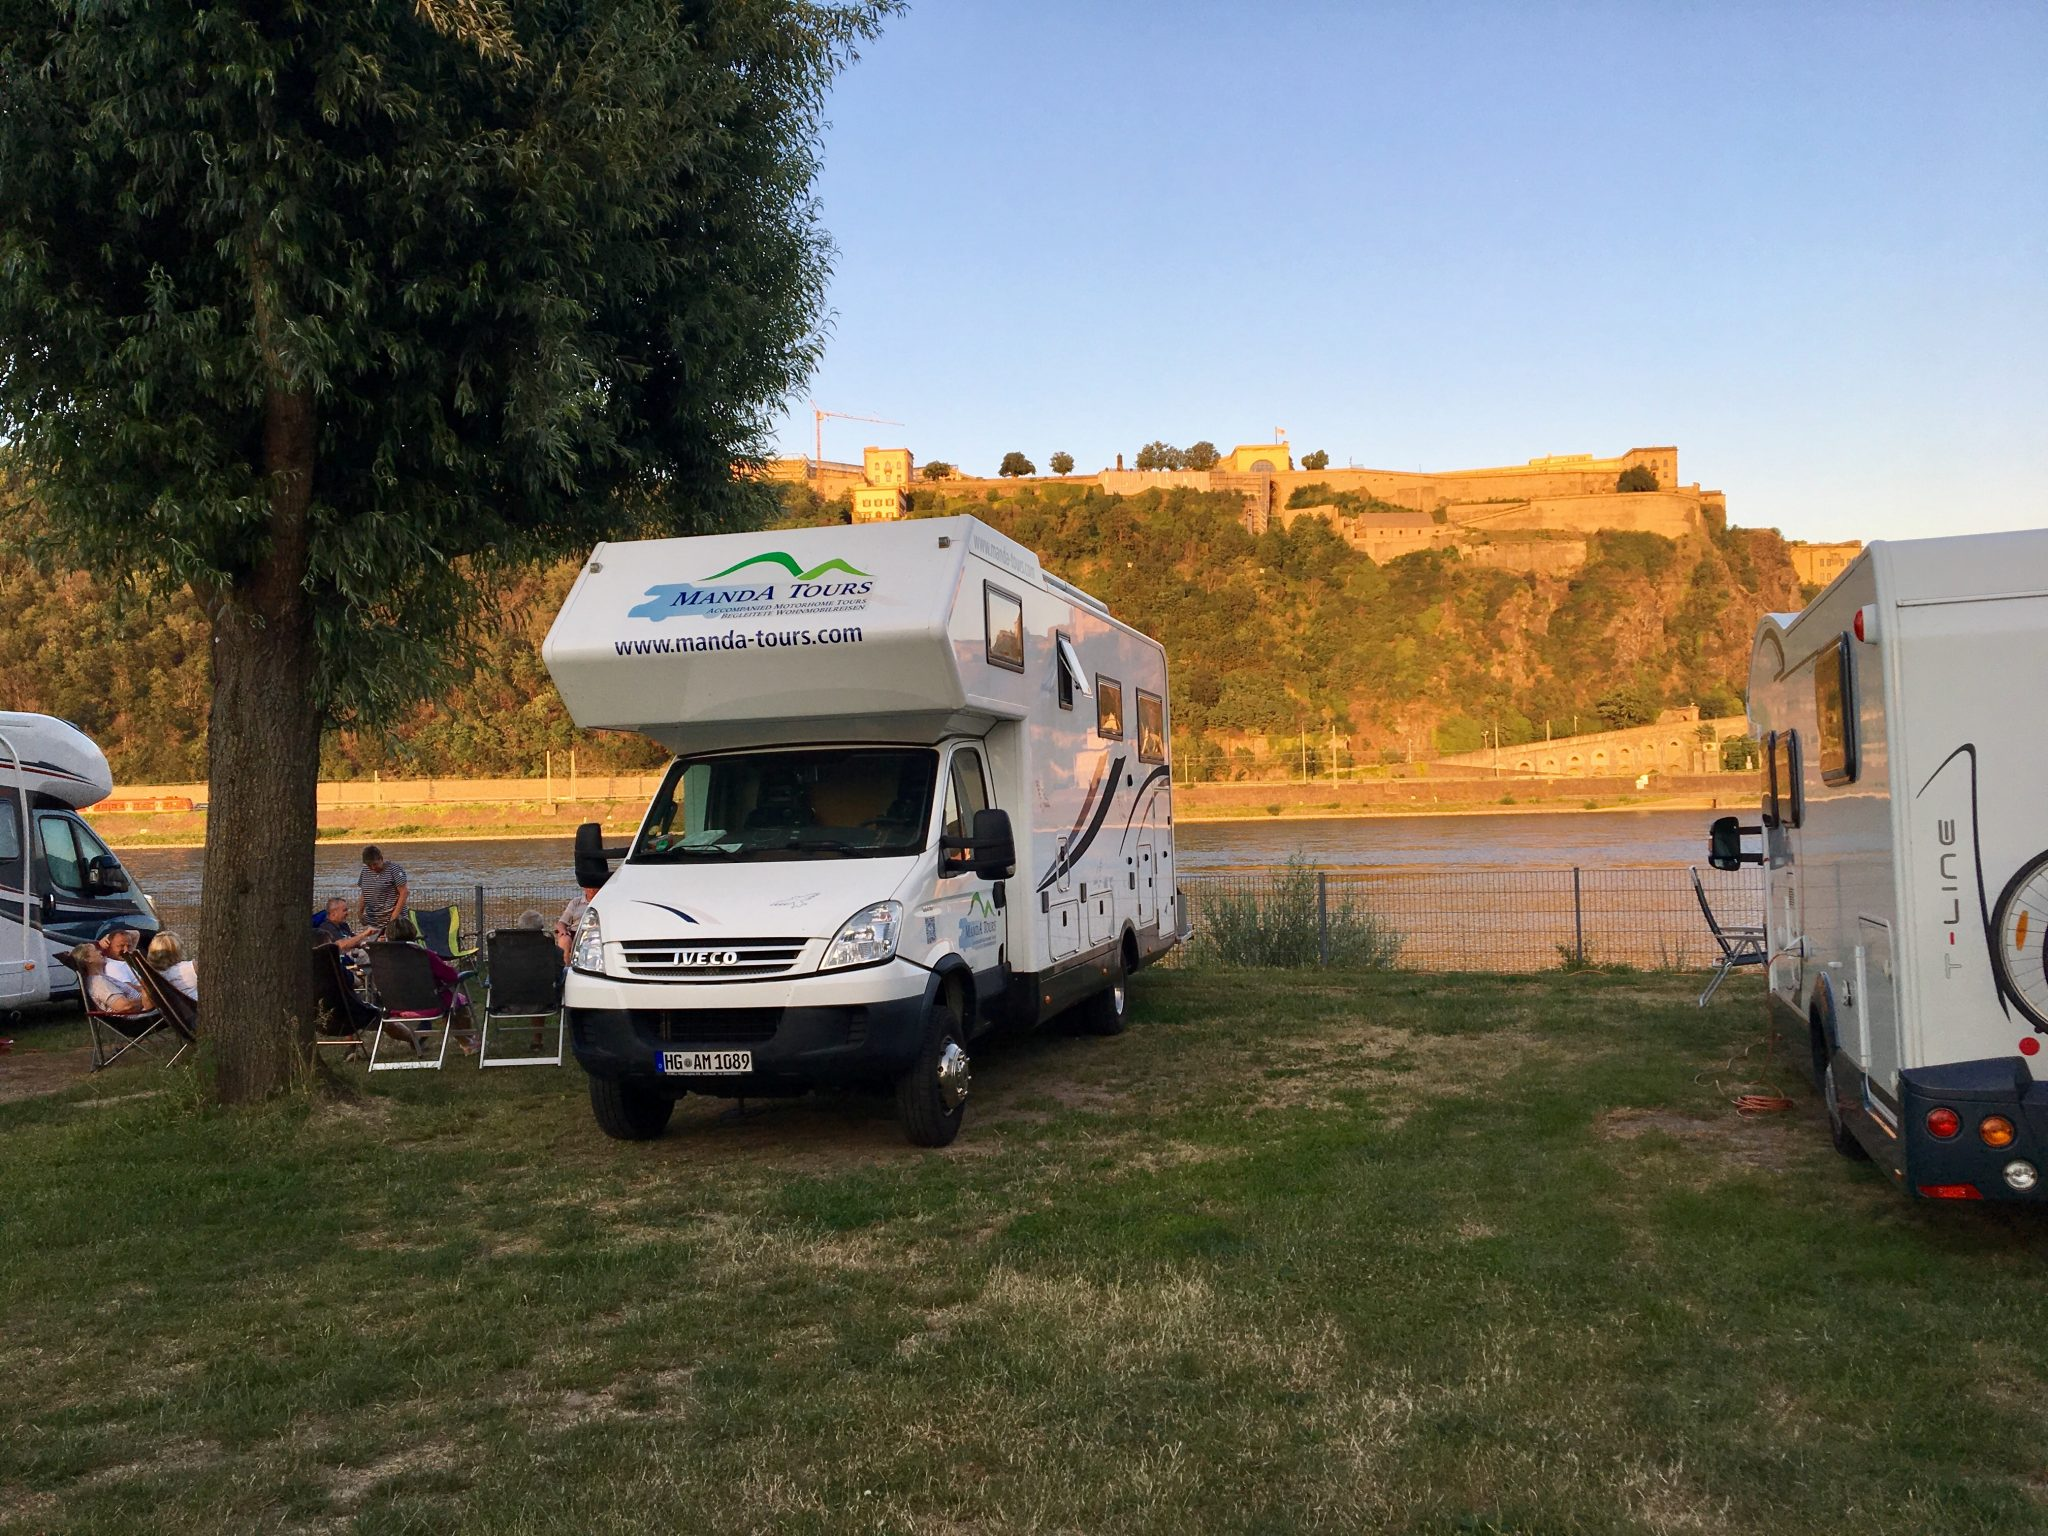 Evening campsite in Koblenz deutsches Eck 2019